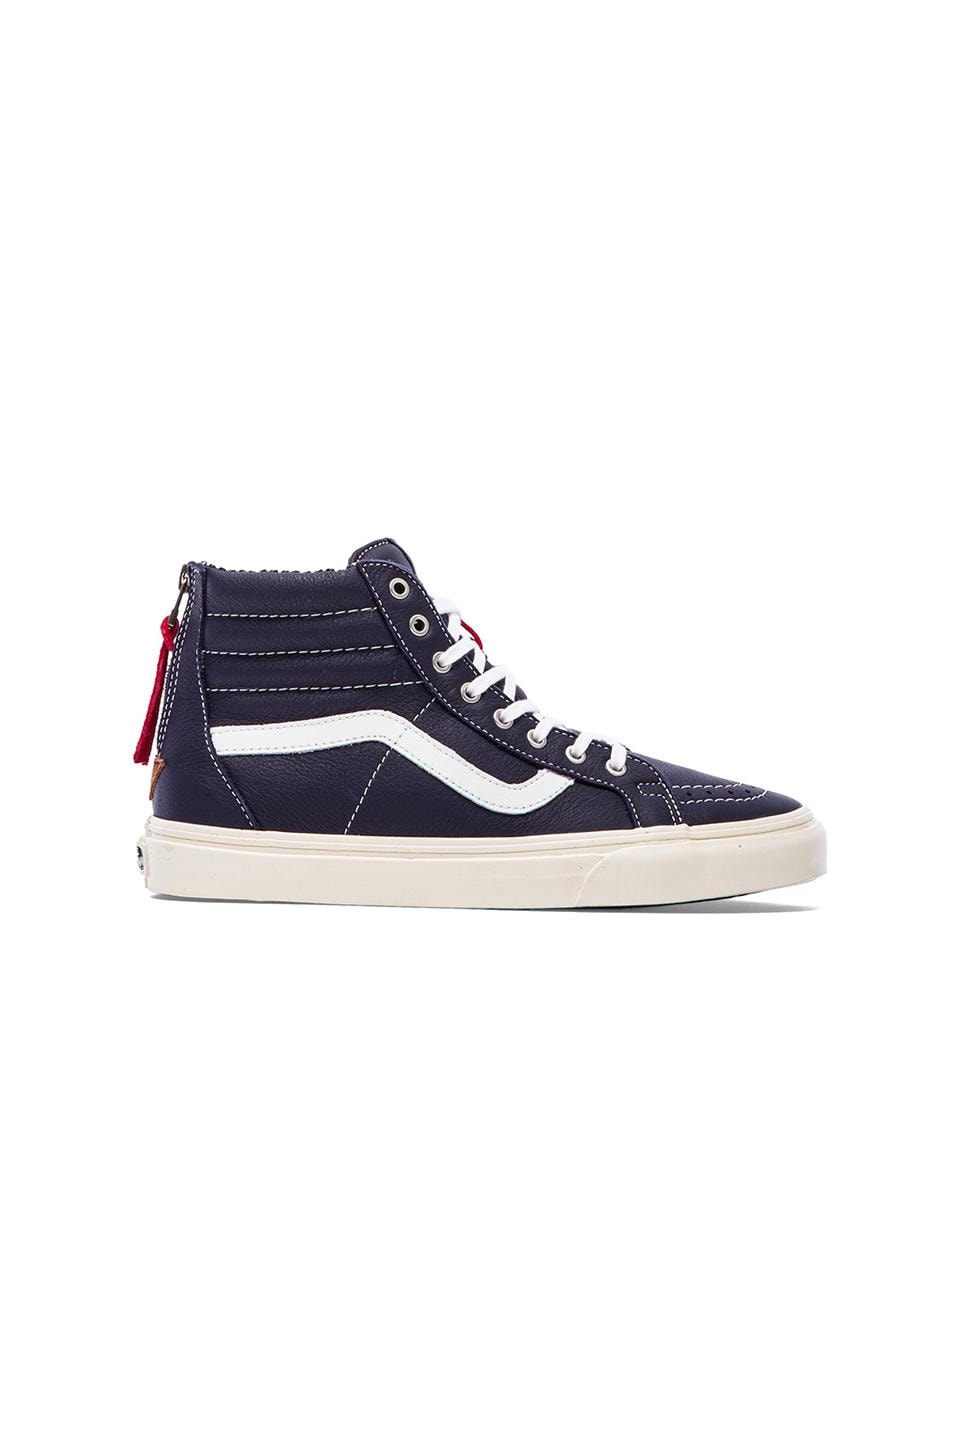 Vans California SK8-Hi CA Zip in Eclipse